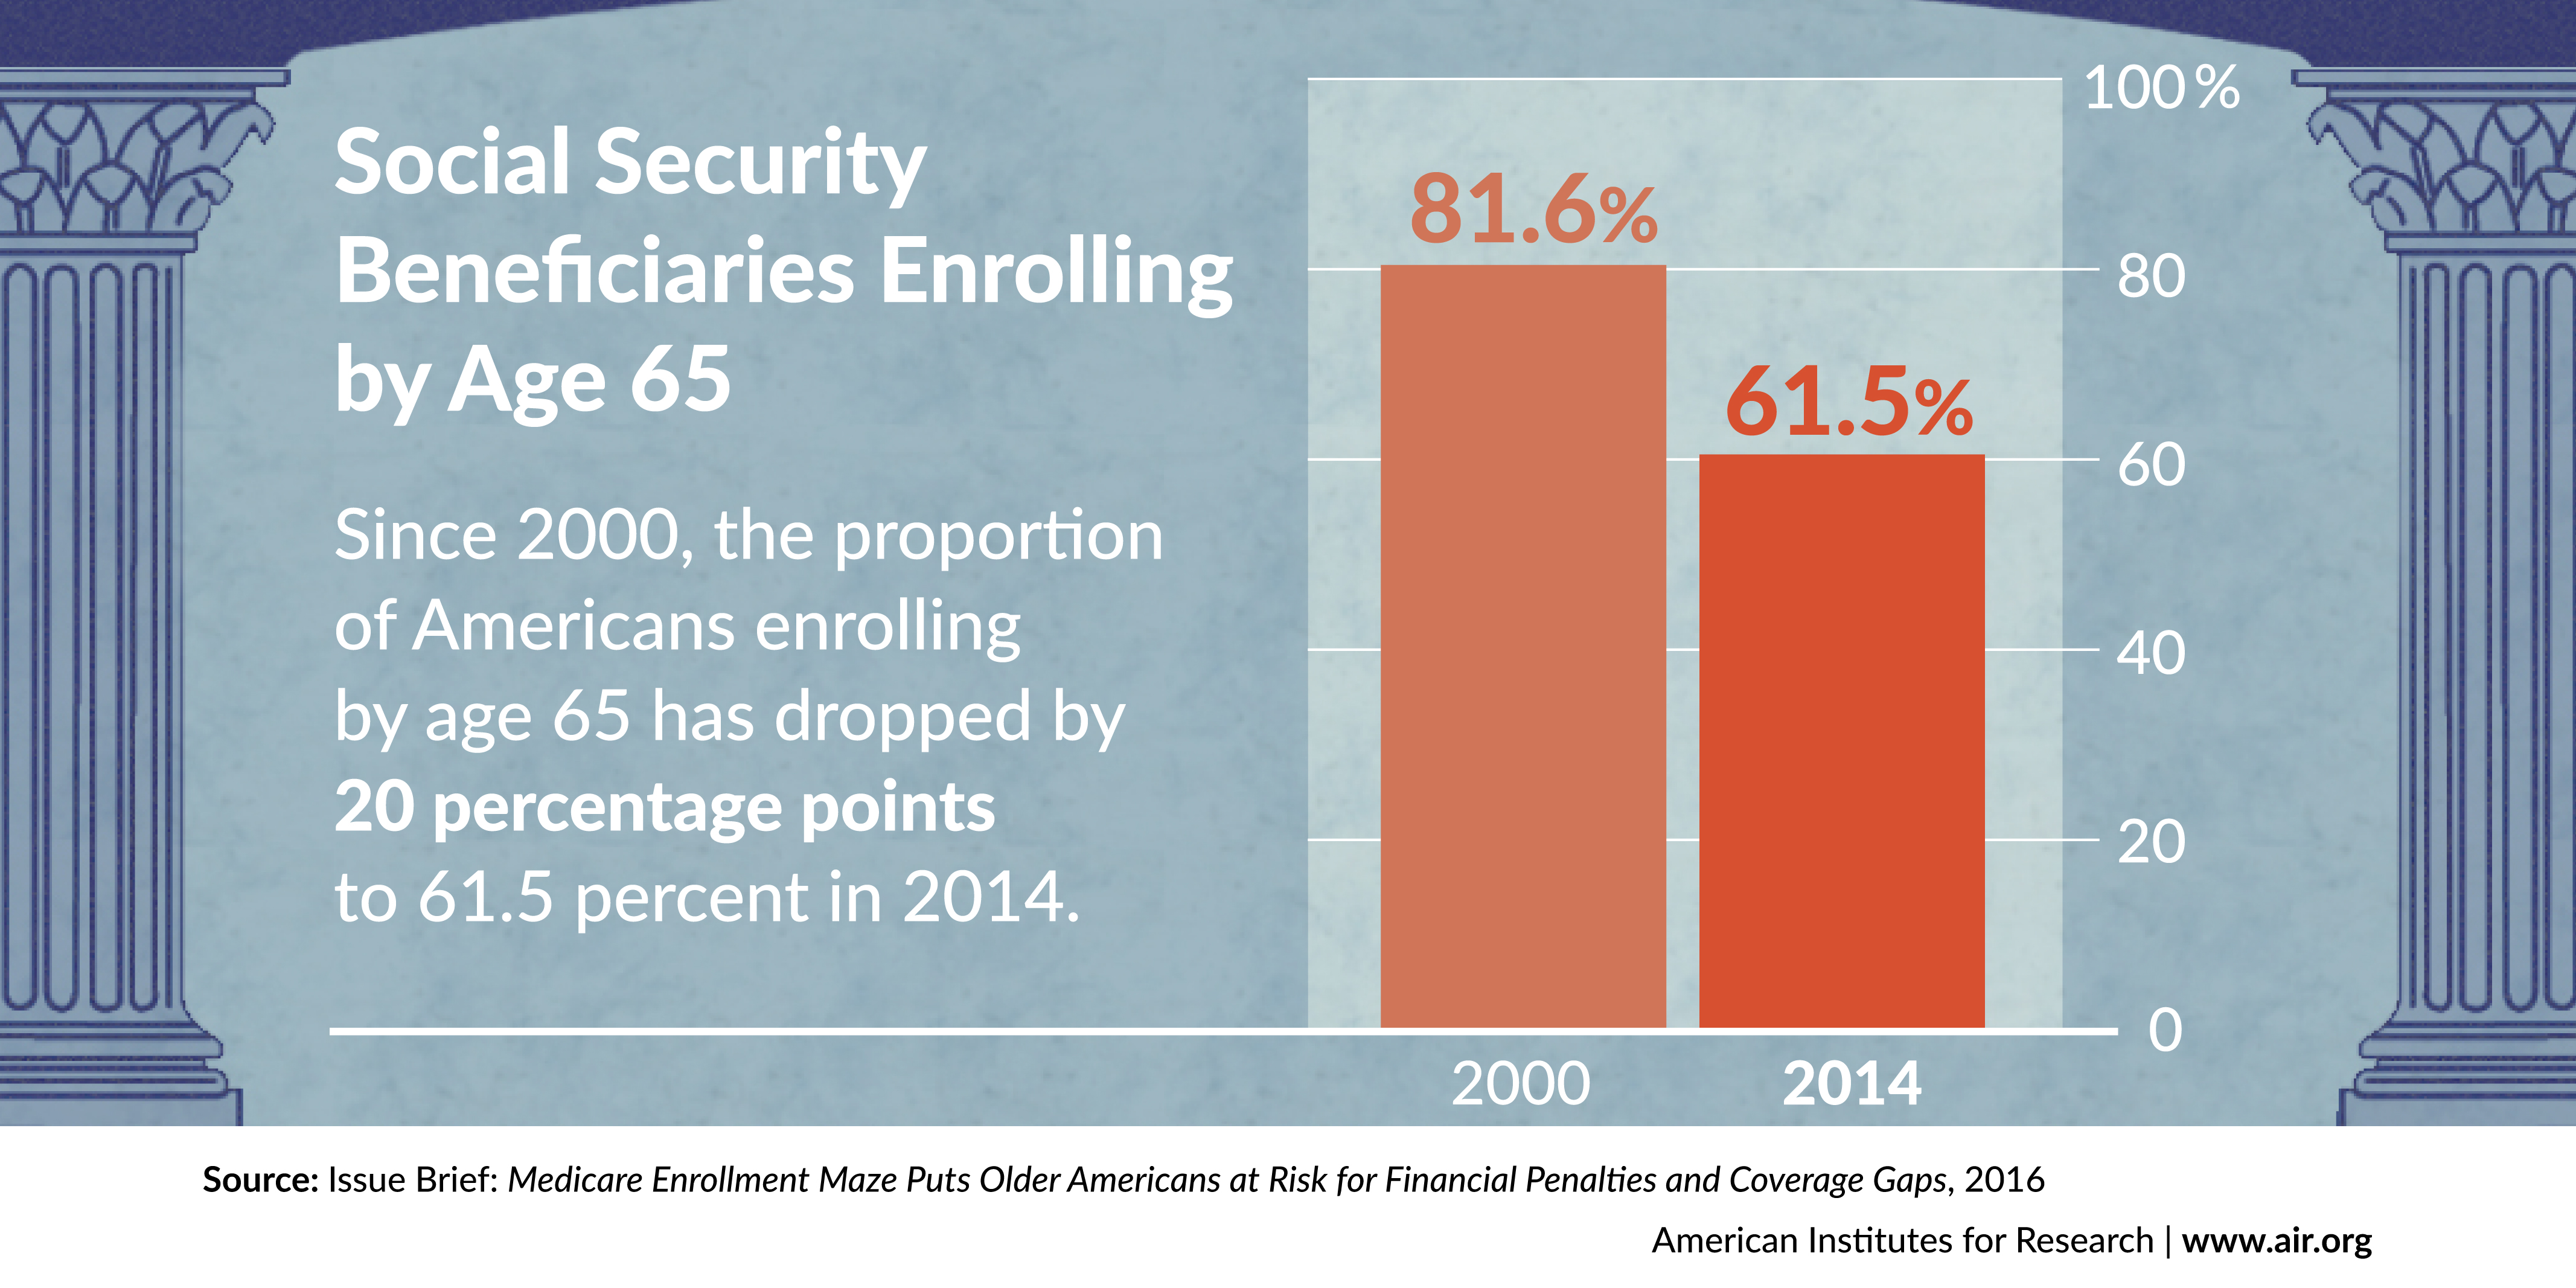 Percentage of Social Security Beneficiaries Enrolling by Age 65